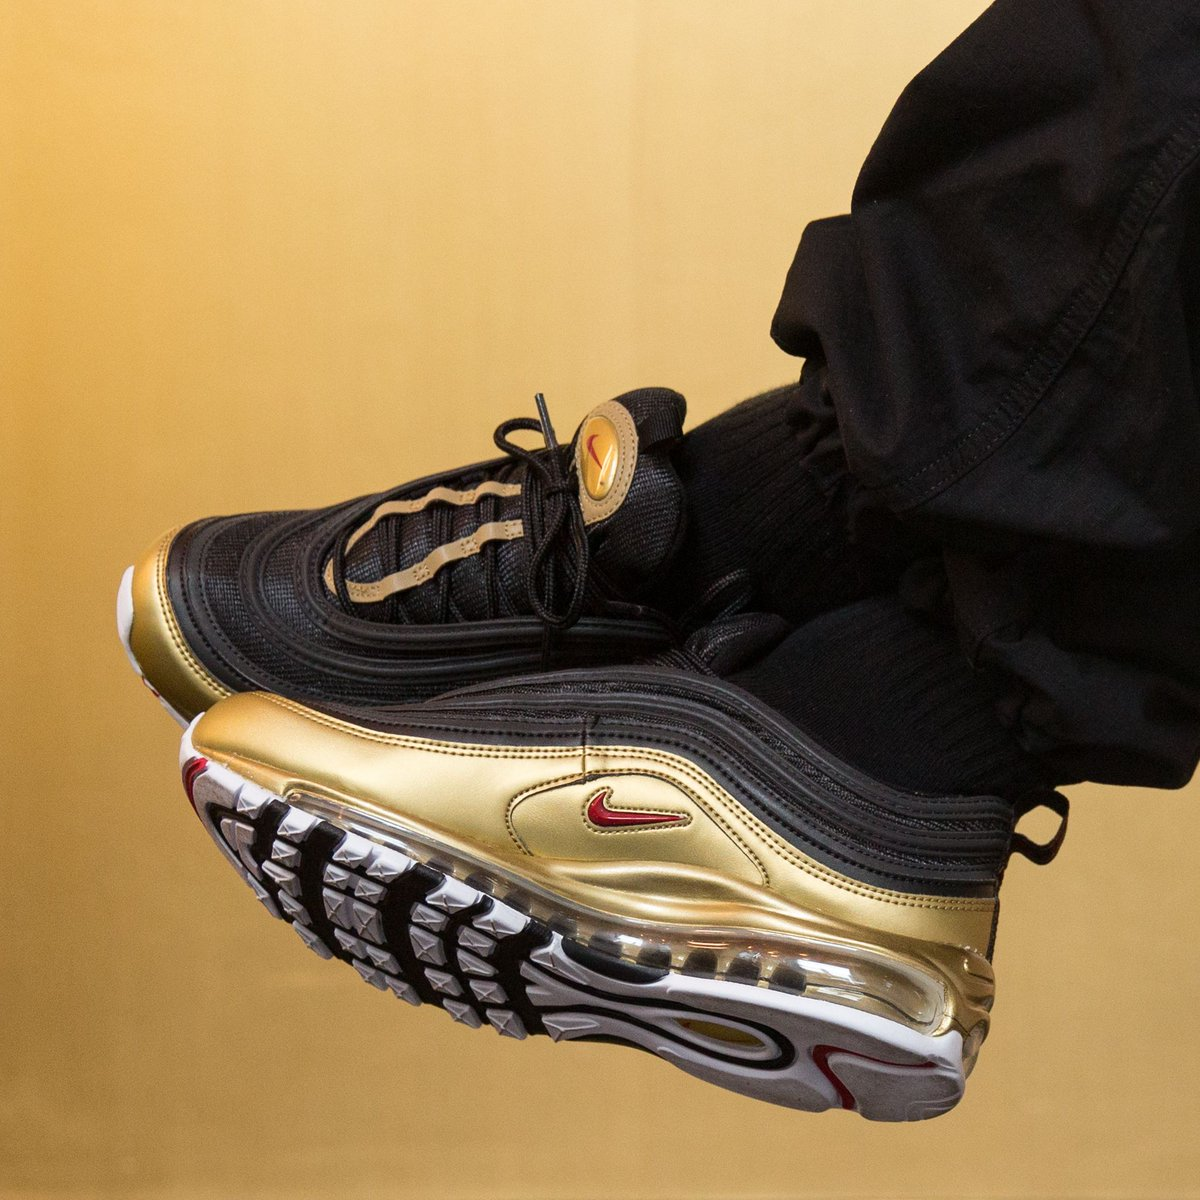 Titolo On Twitter New Products On Sale Nike Air Max 97 Qs Black Varsity Red Metallic Gold White L I N K